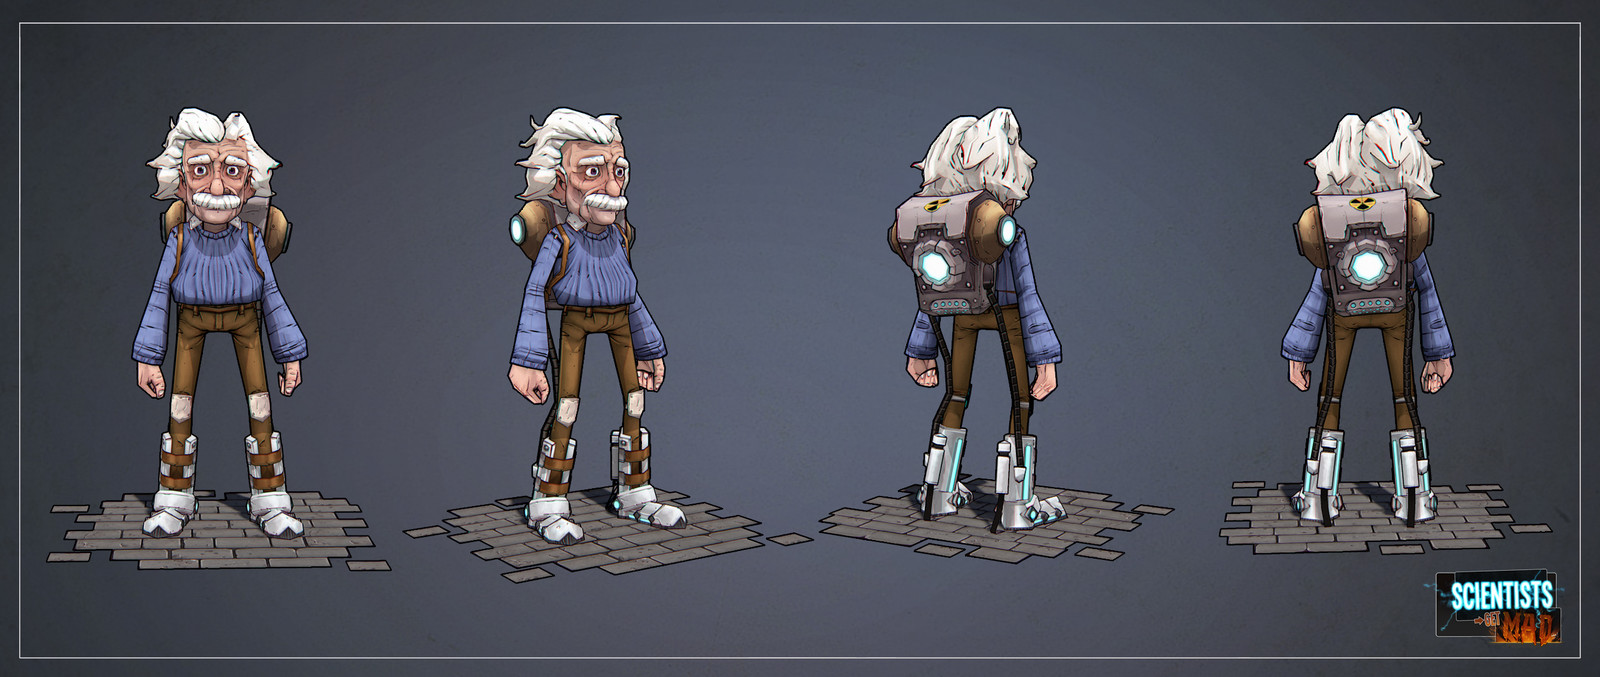 Einstein in game model (3d by Mario Ho-wen-ying, texture by me)